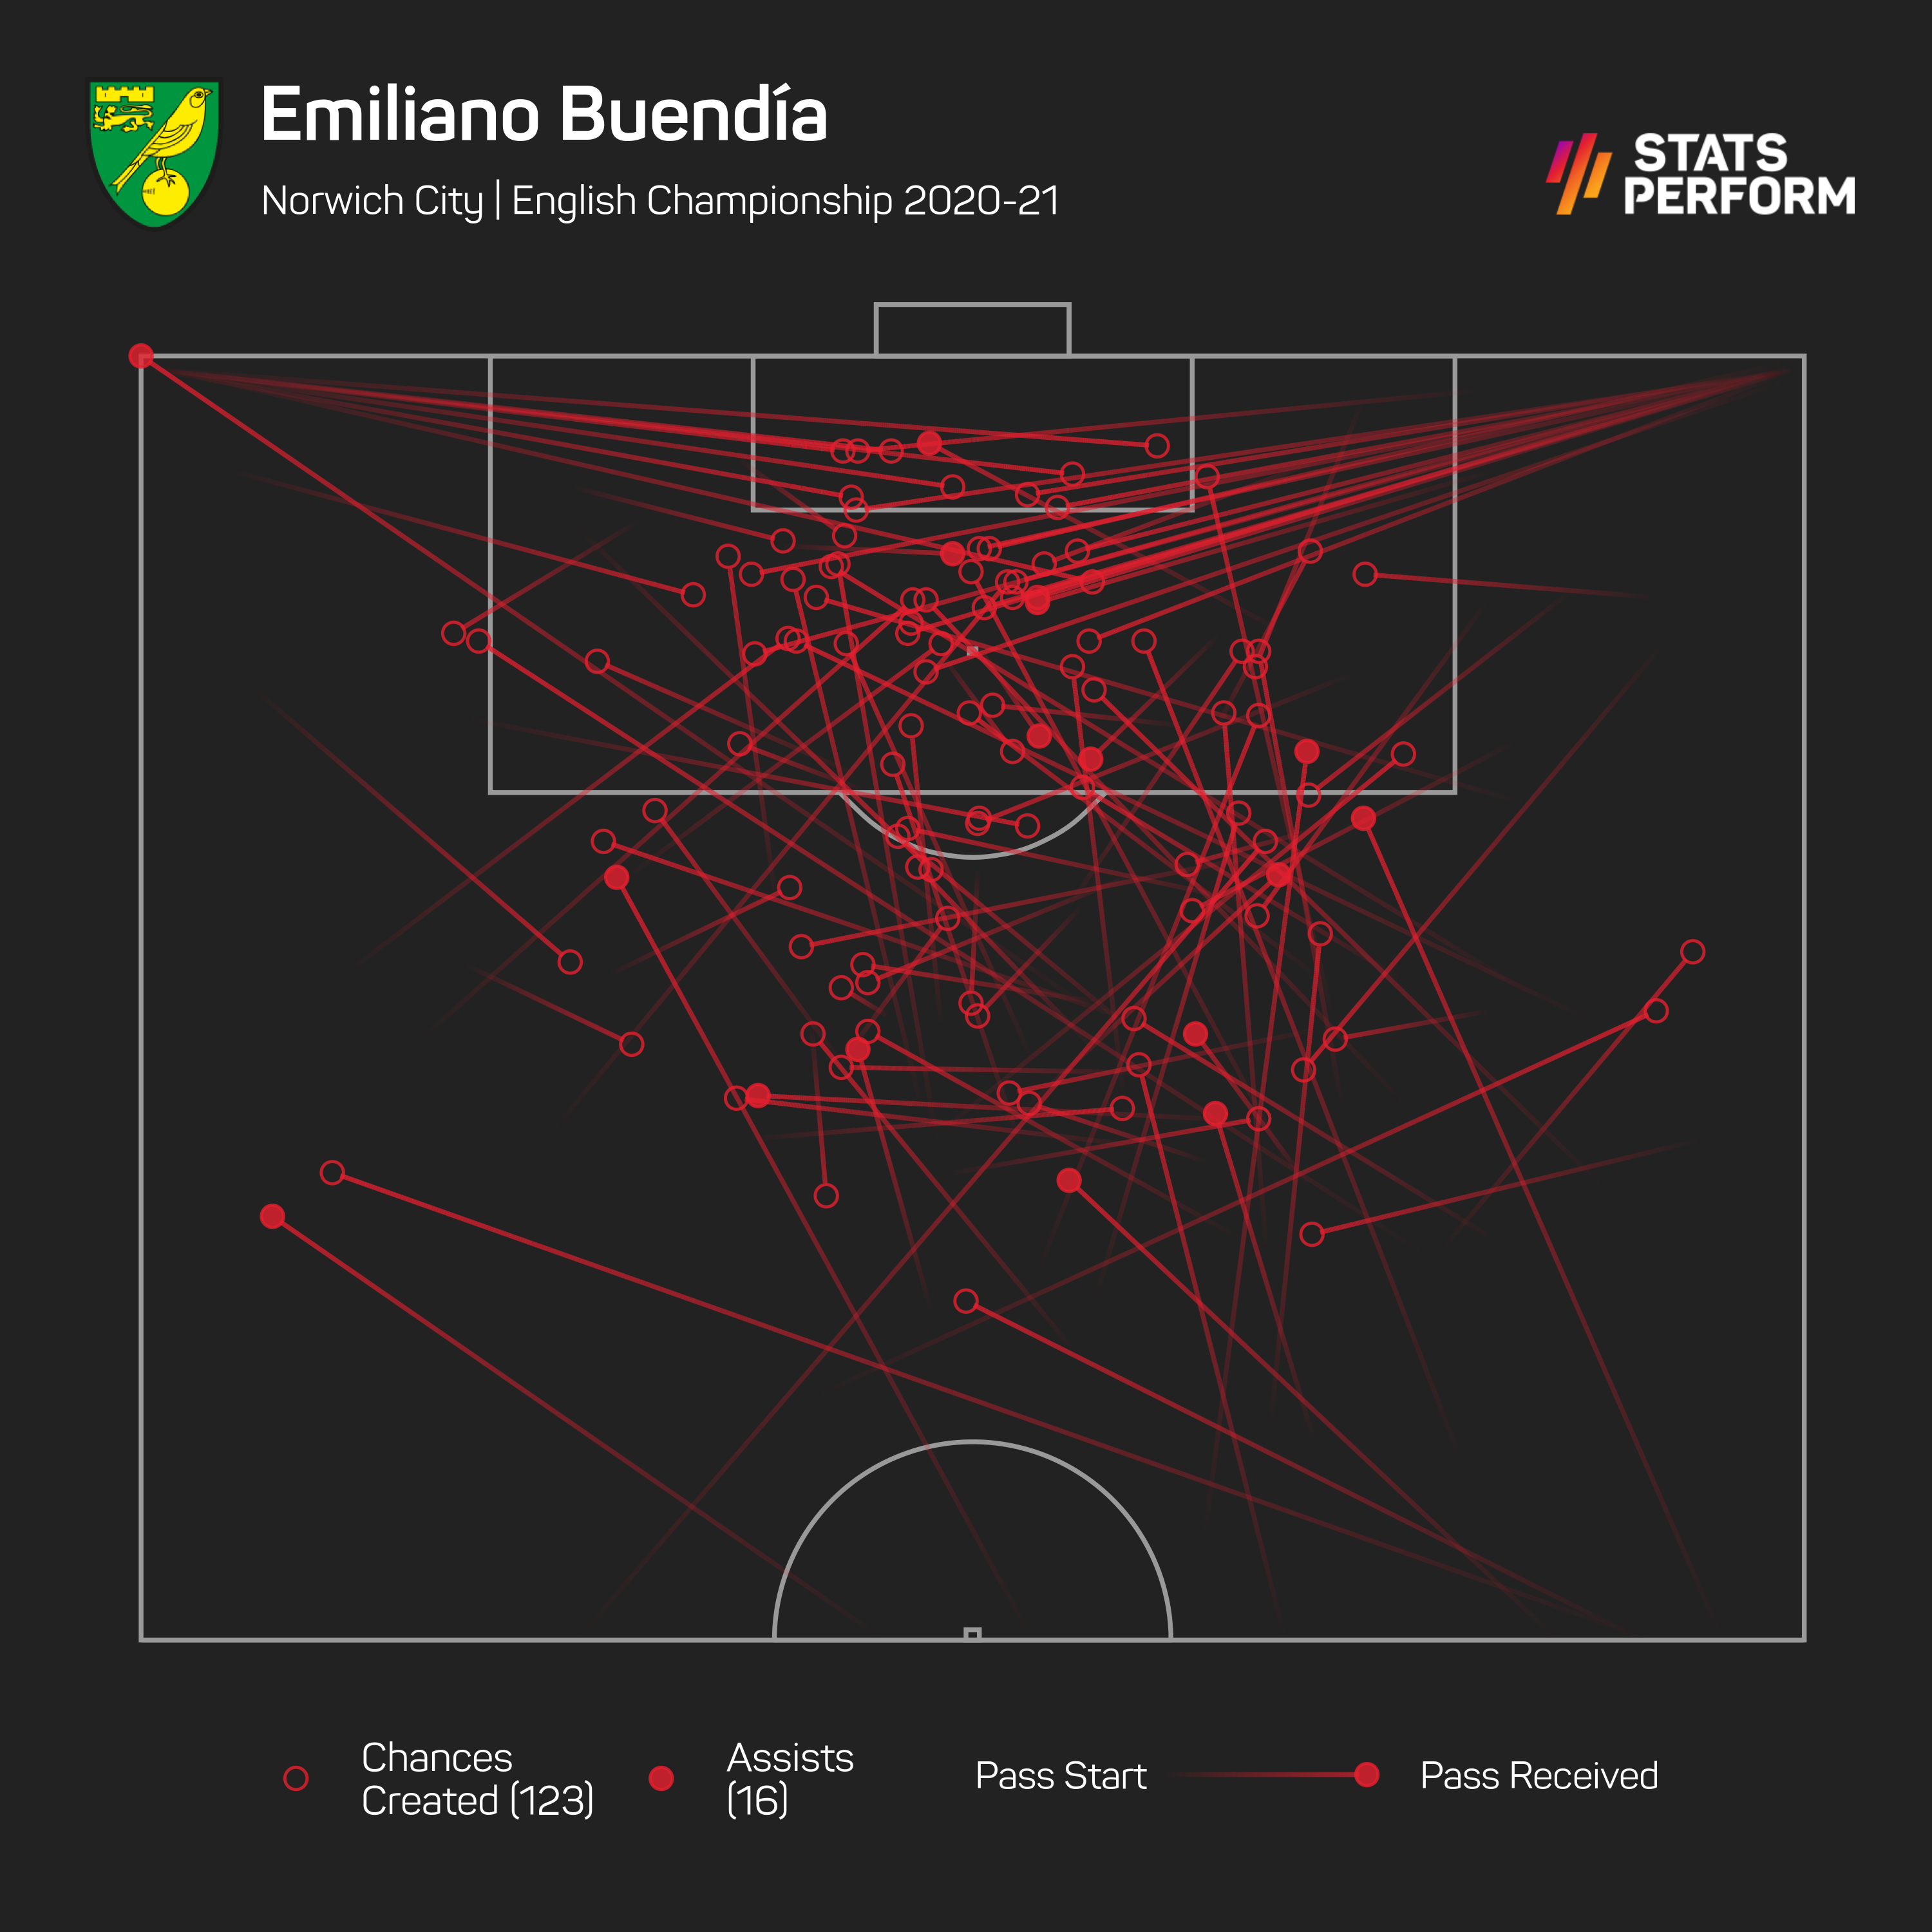 No one created anywhere near as many chances as Buendia in 2020-21